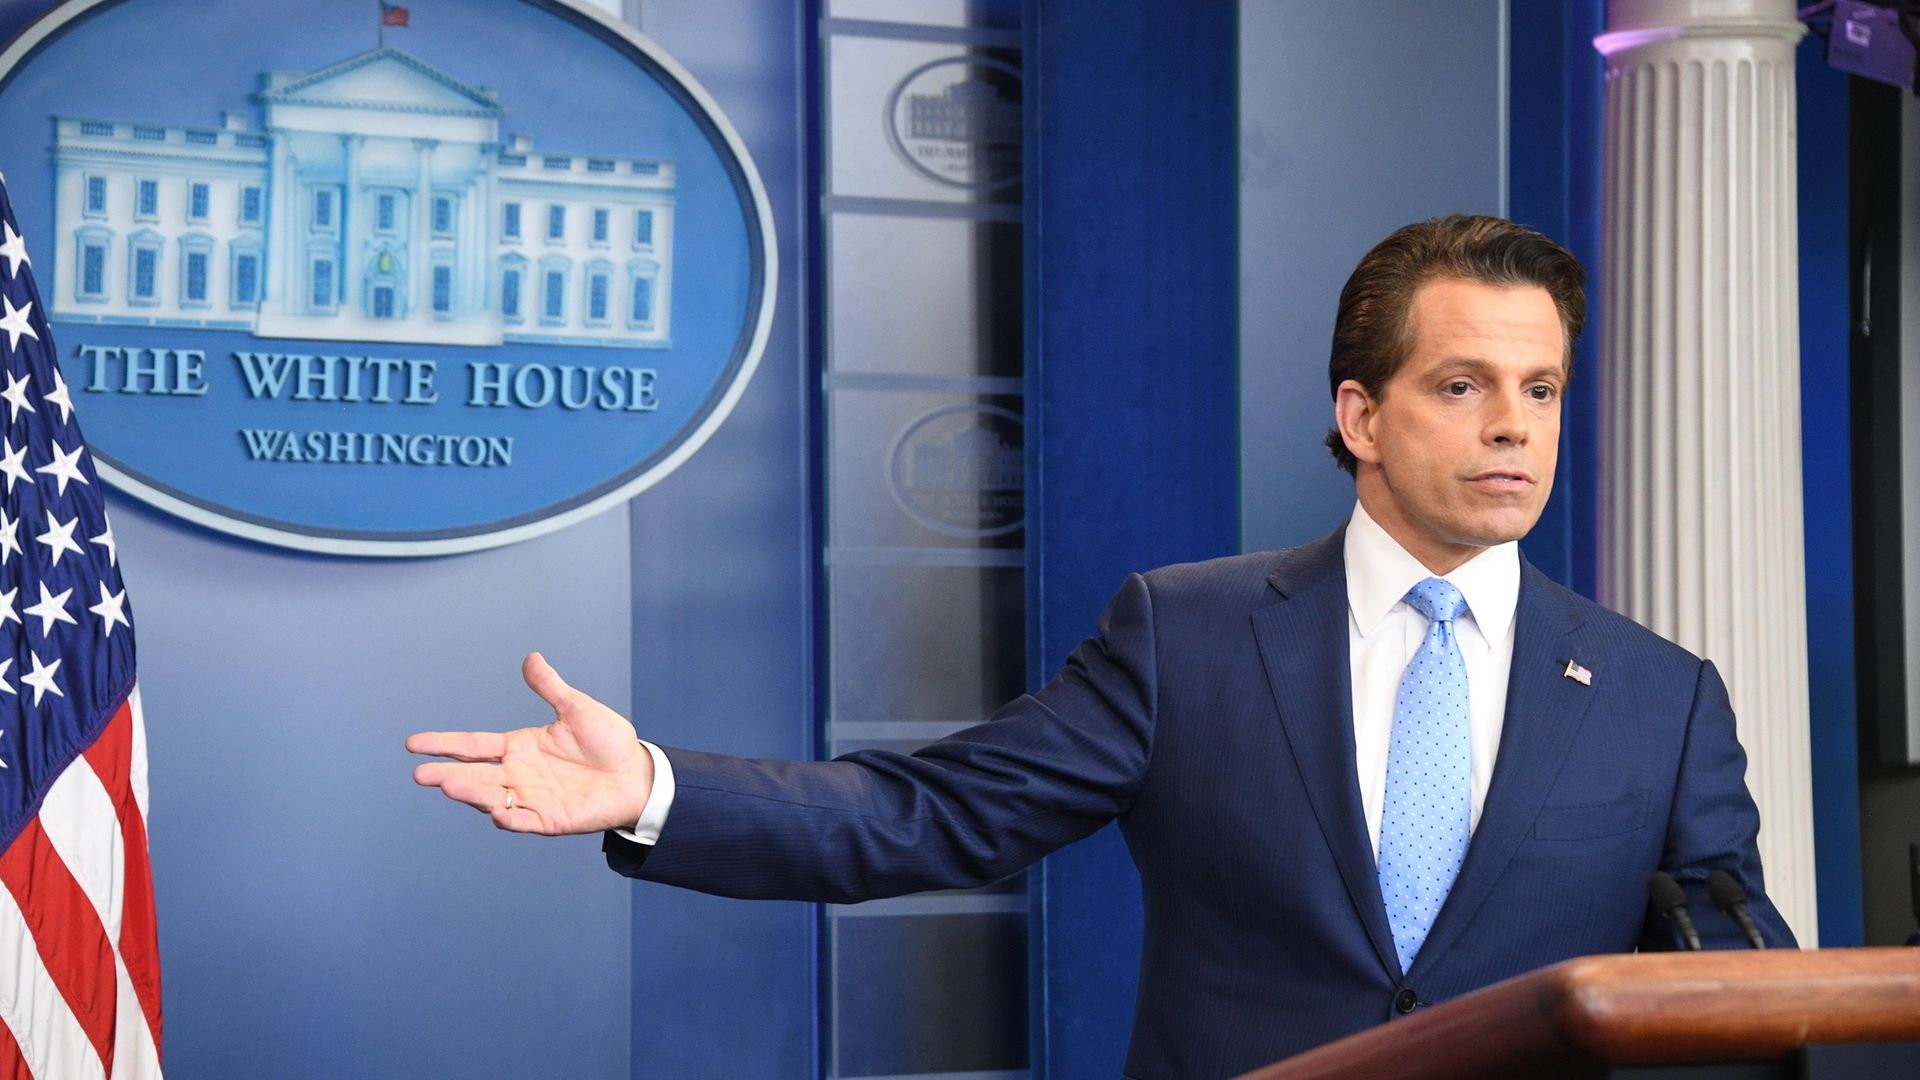 Anthony Scaramucci during his brief spell as Donald Trump's White House communications director - Credit: AFP via Getty Images